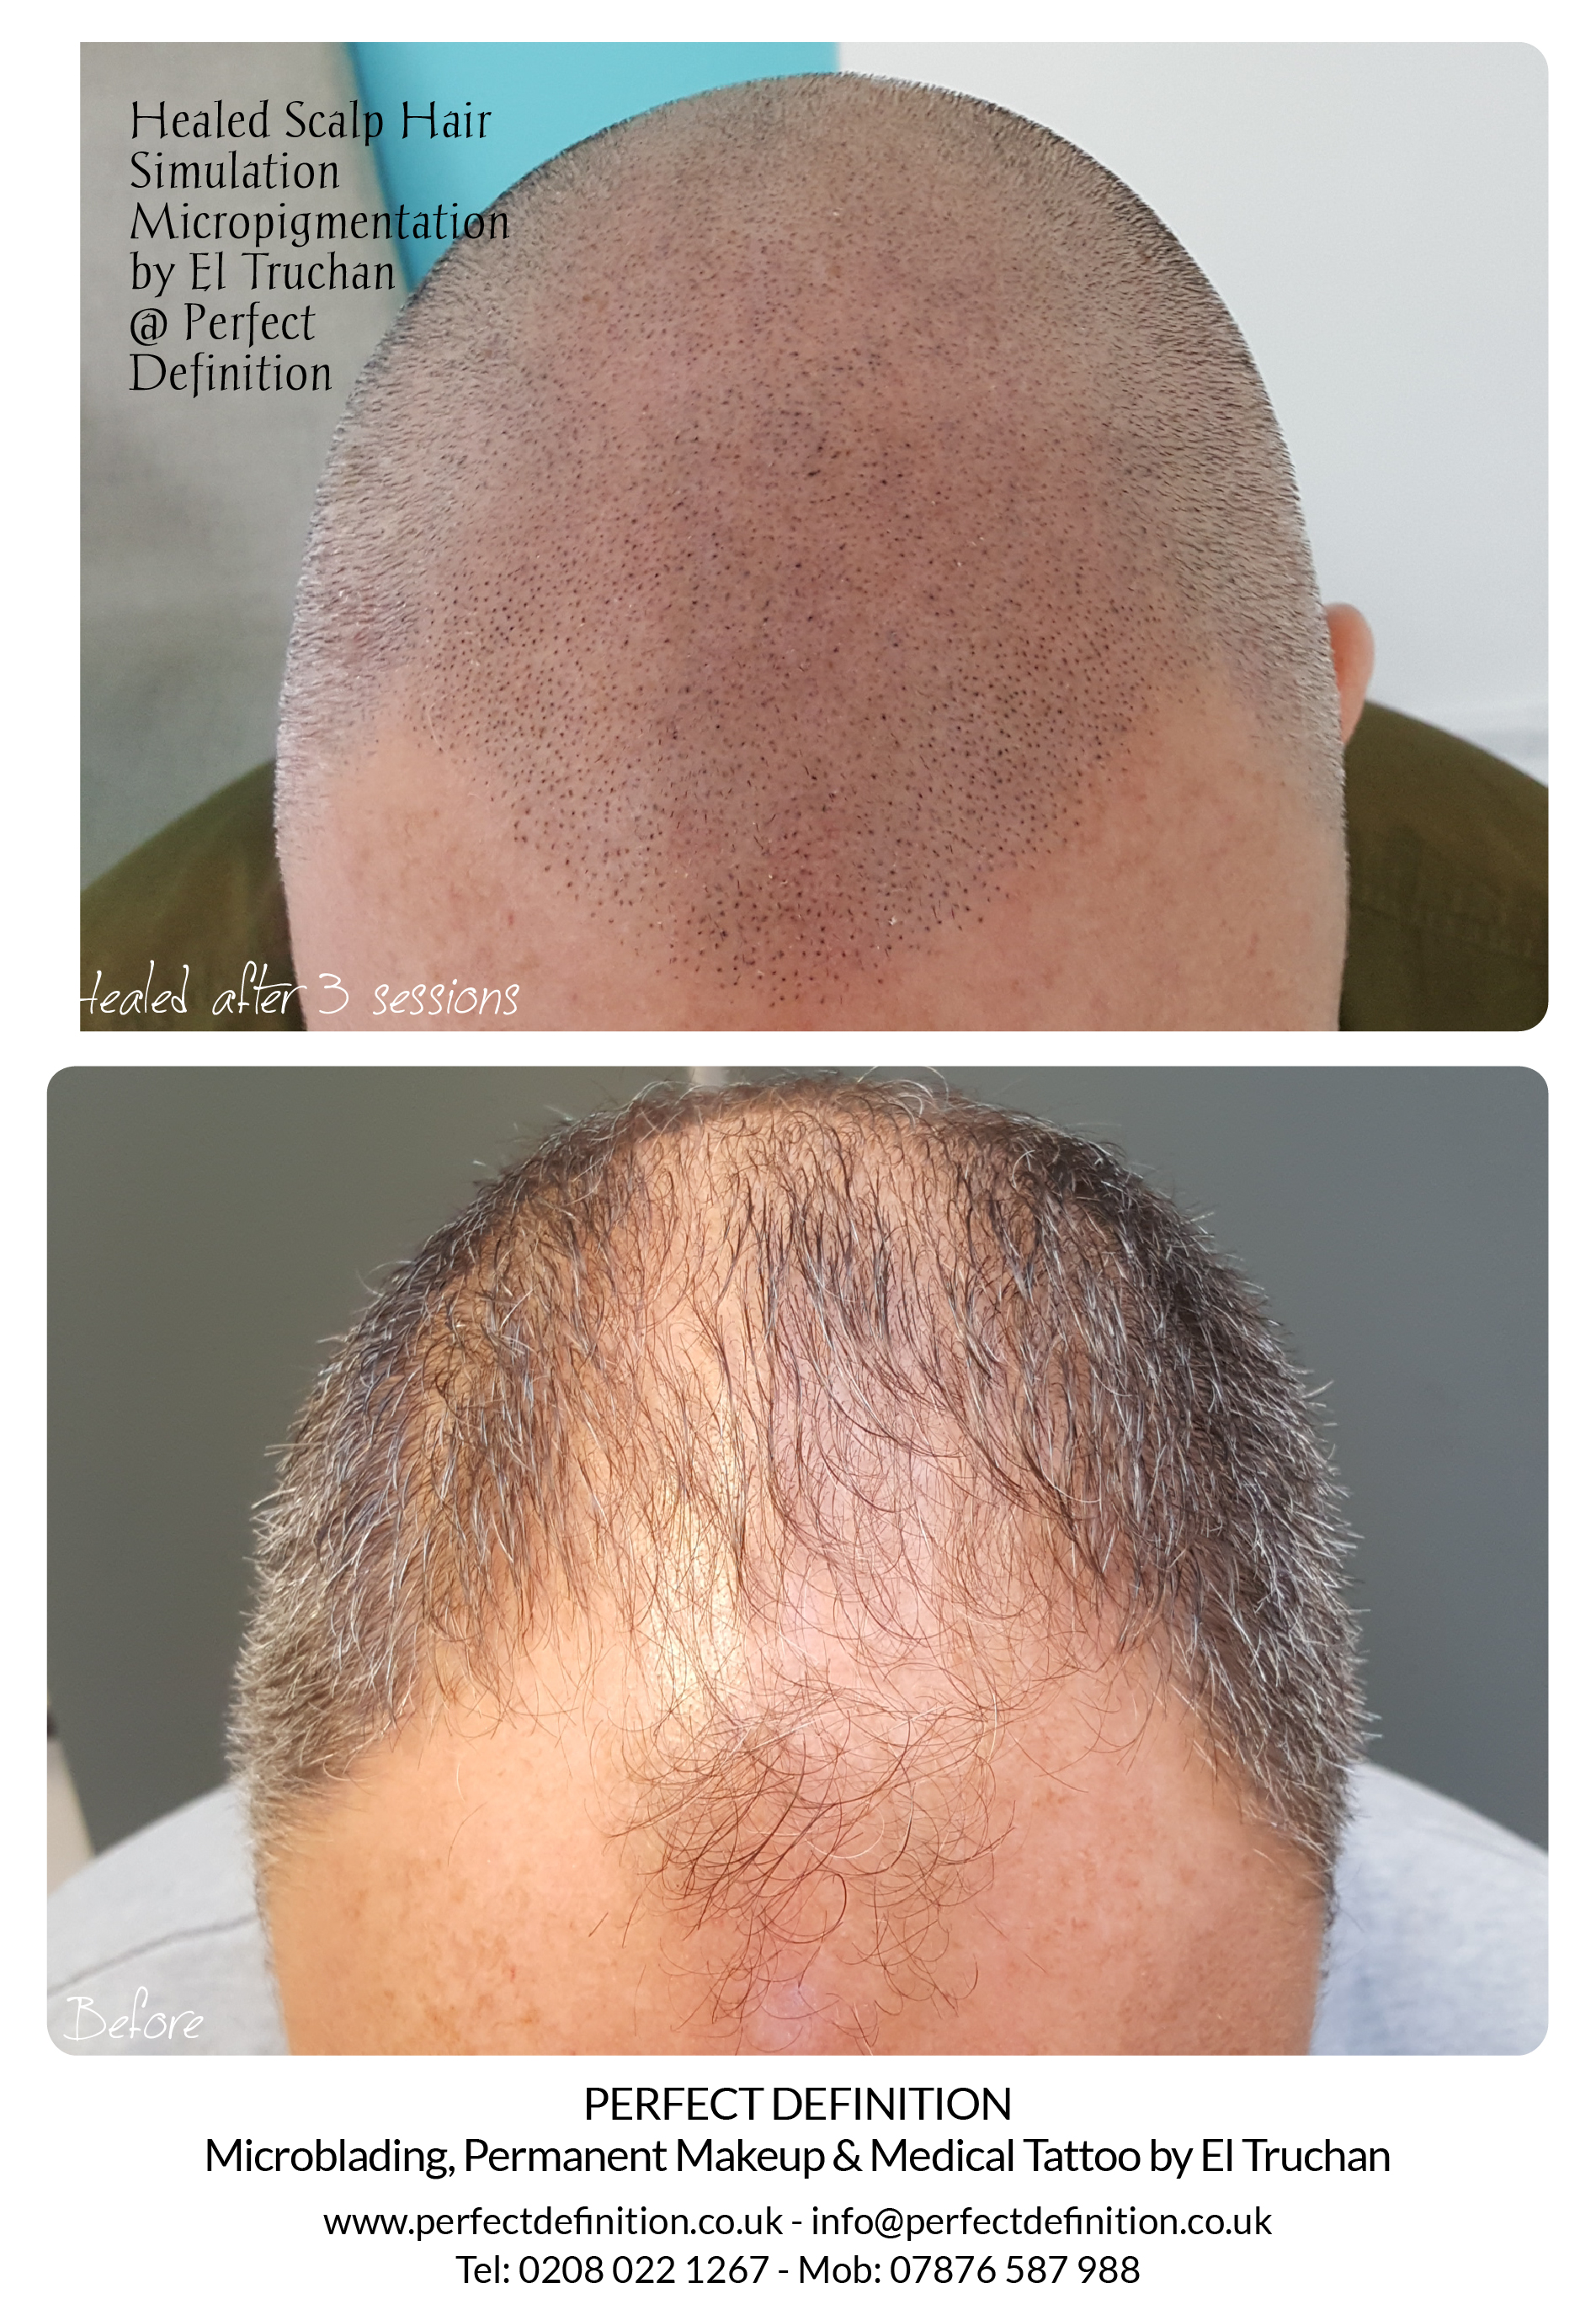 Scalp Micopigmentation